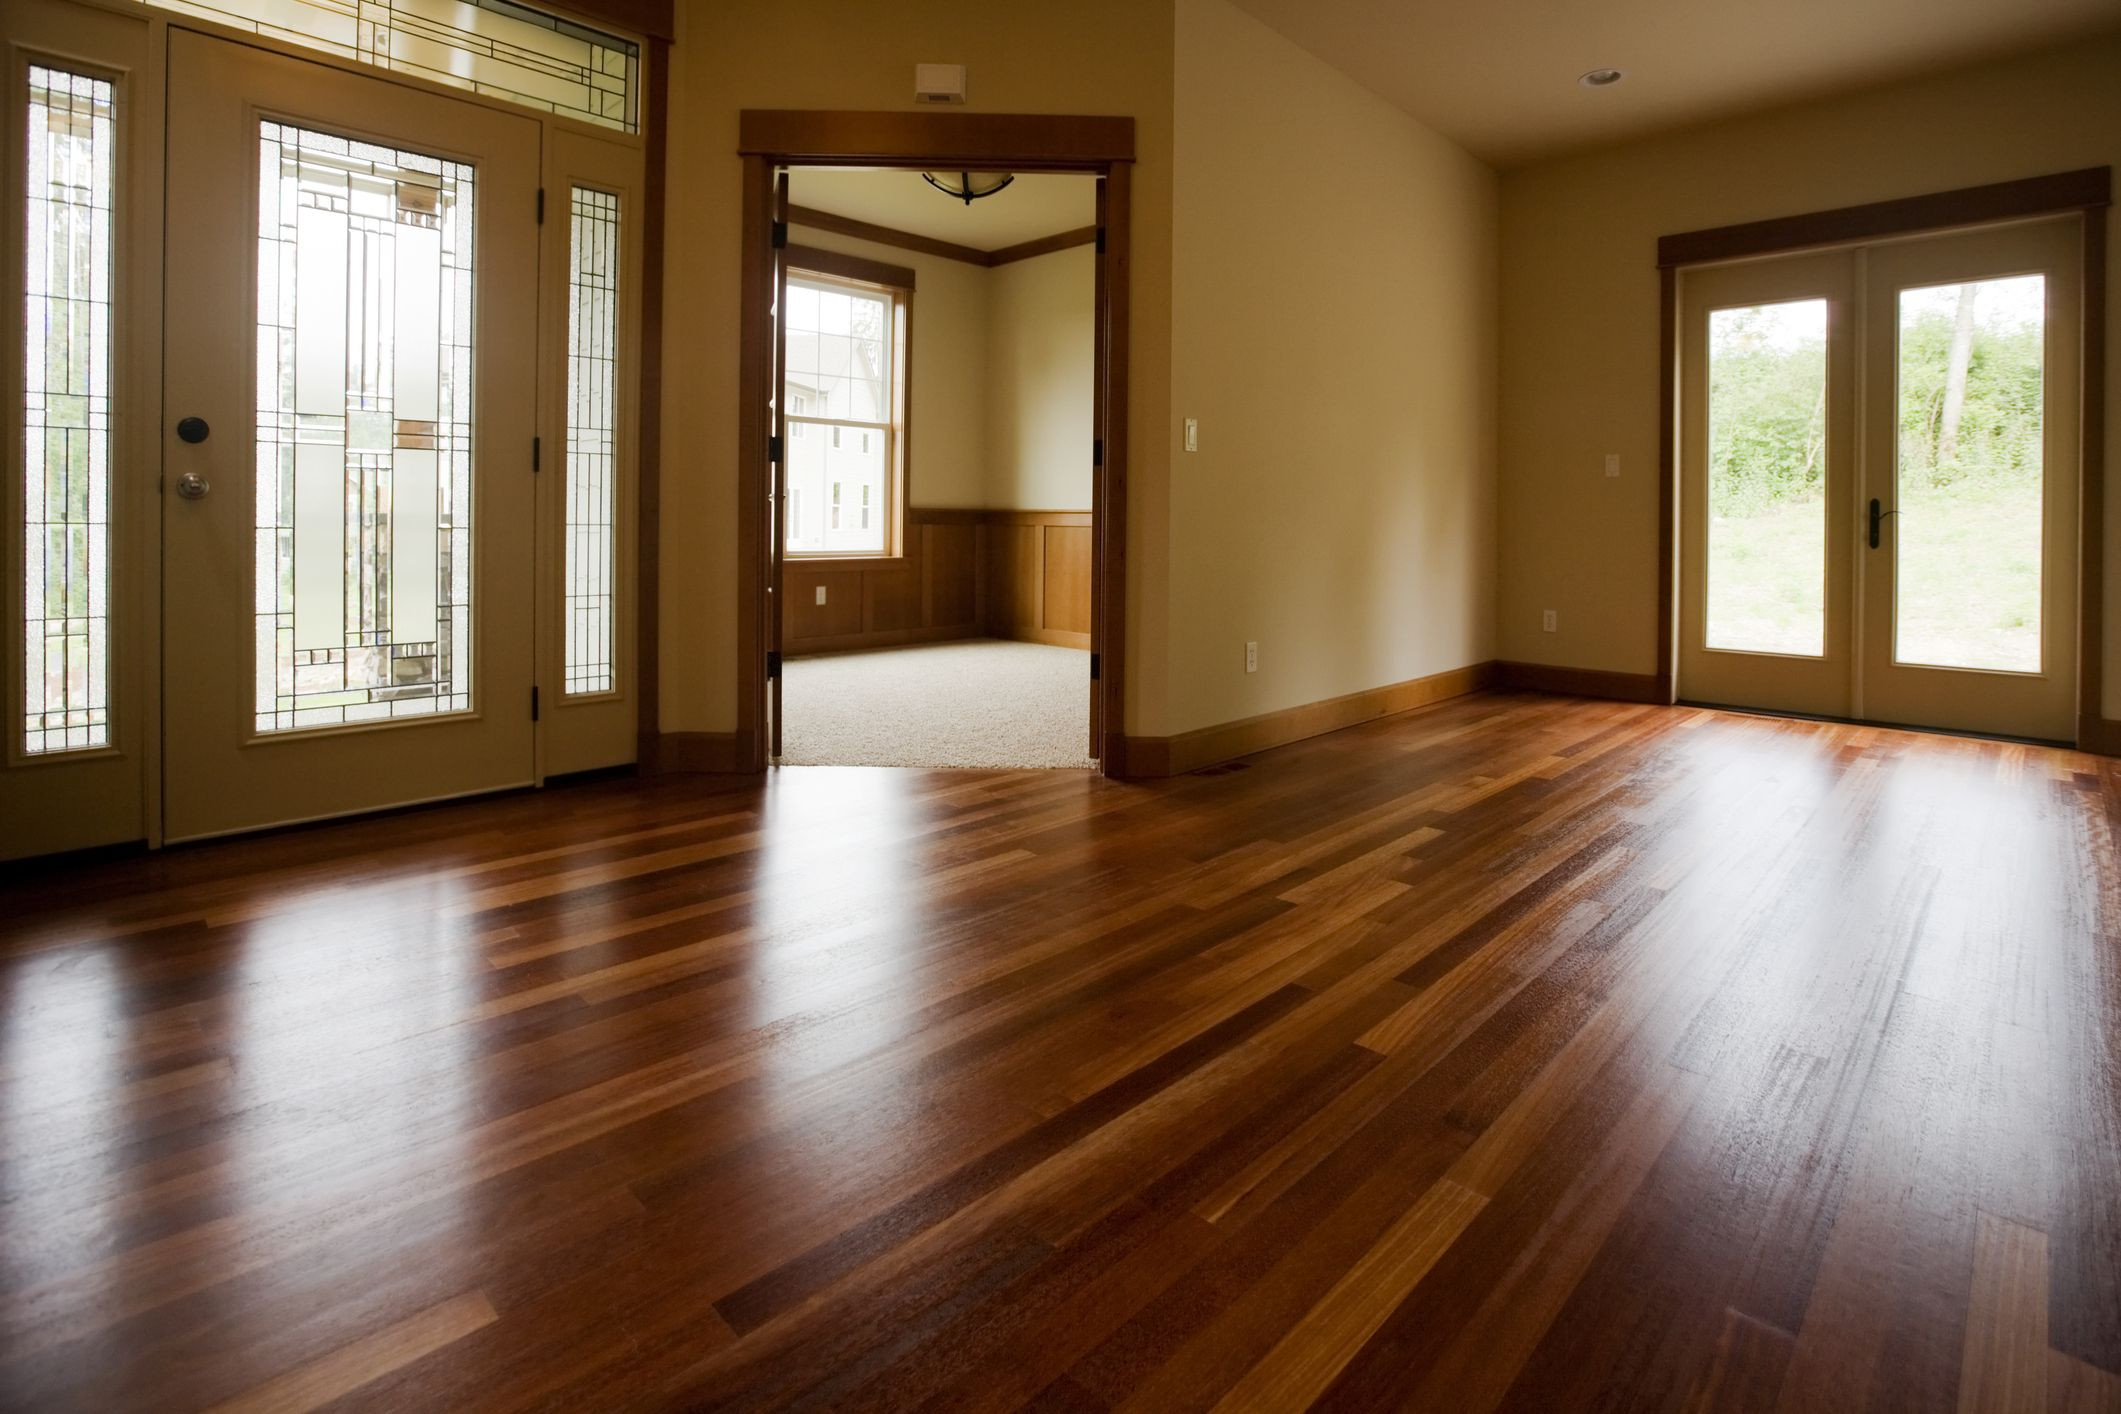 5 16 hardwood flooring install of types of hardwood flooring buyers guide within gettyimages 157332889 5886d8383df78c2ccd65d4e1